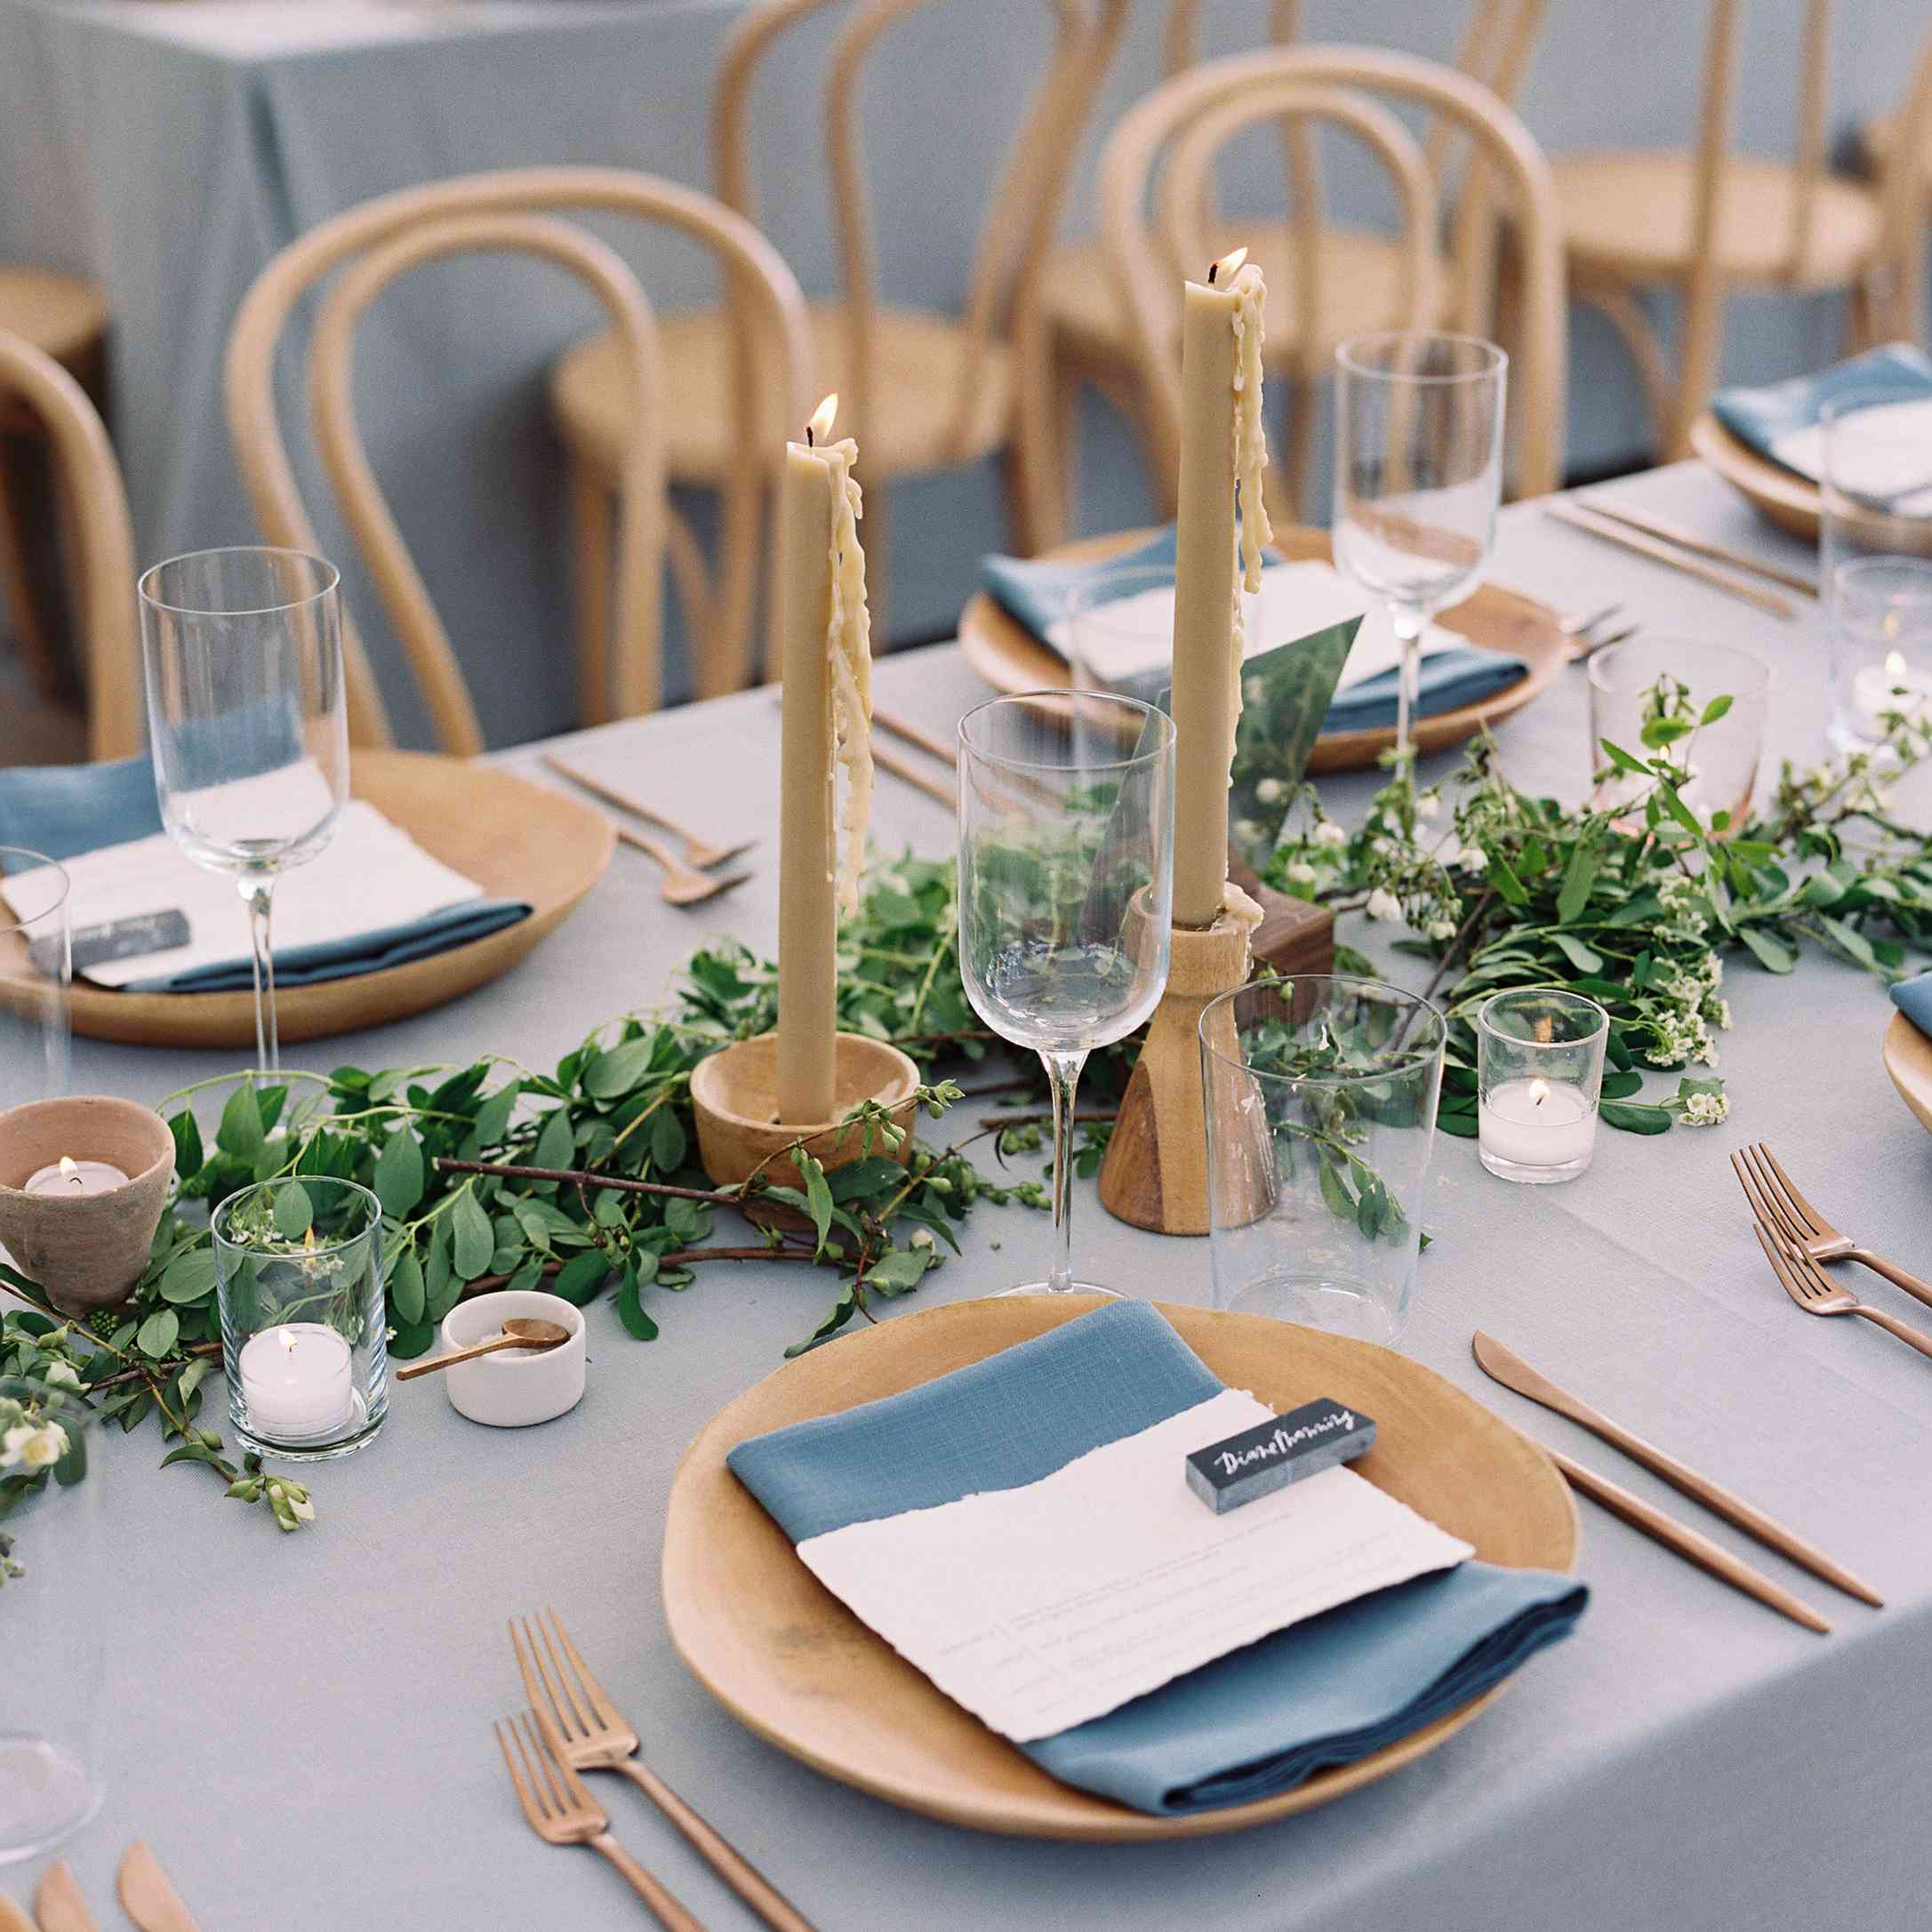 Nude candles on table setting